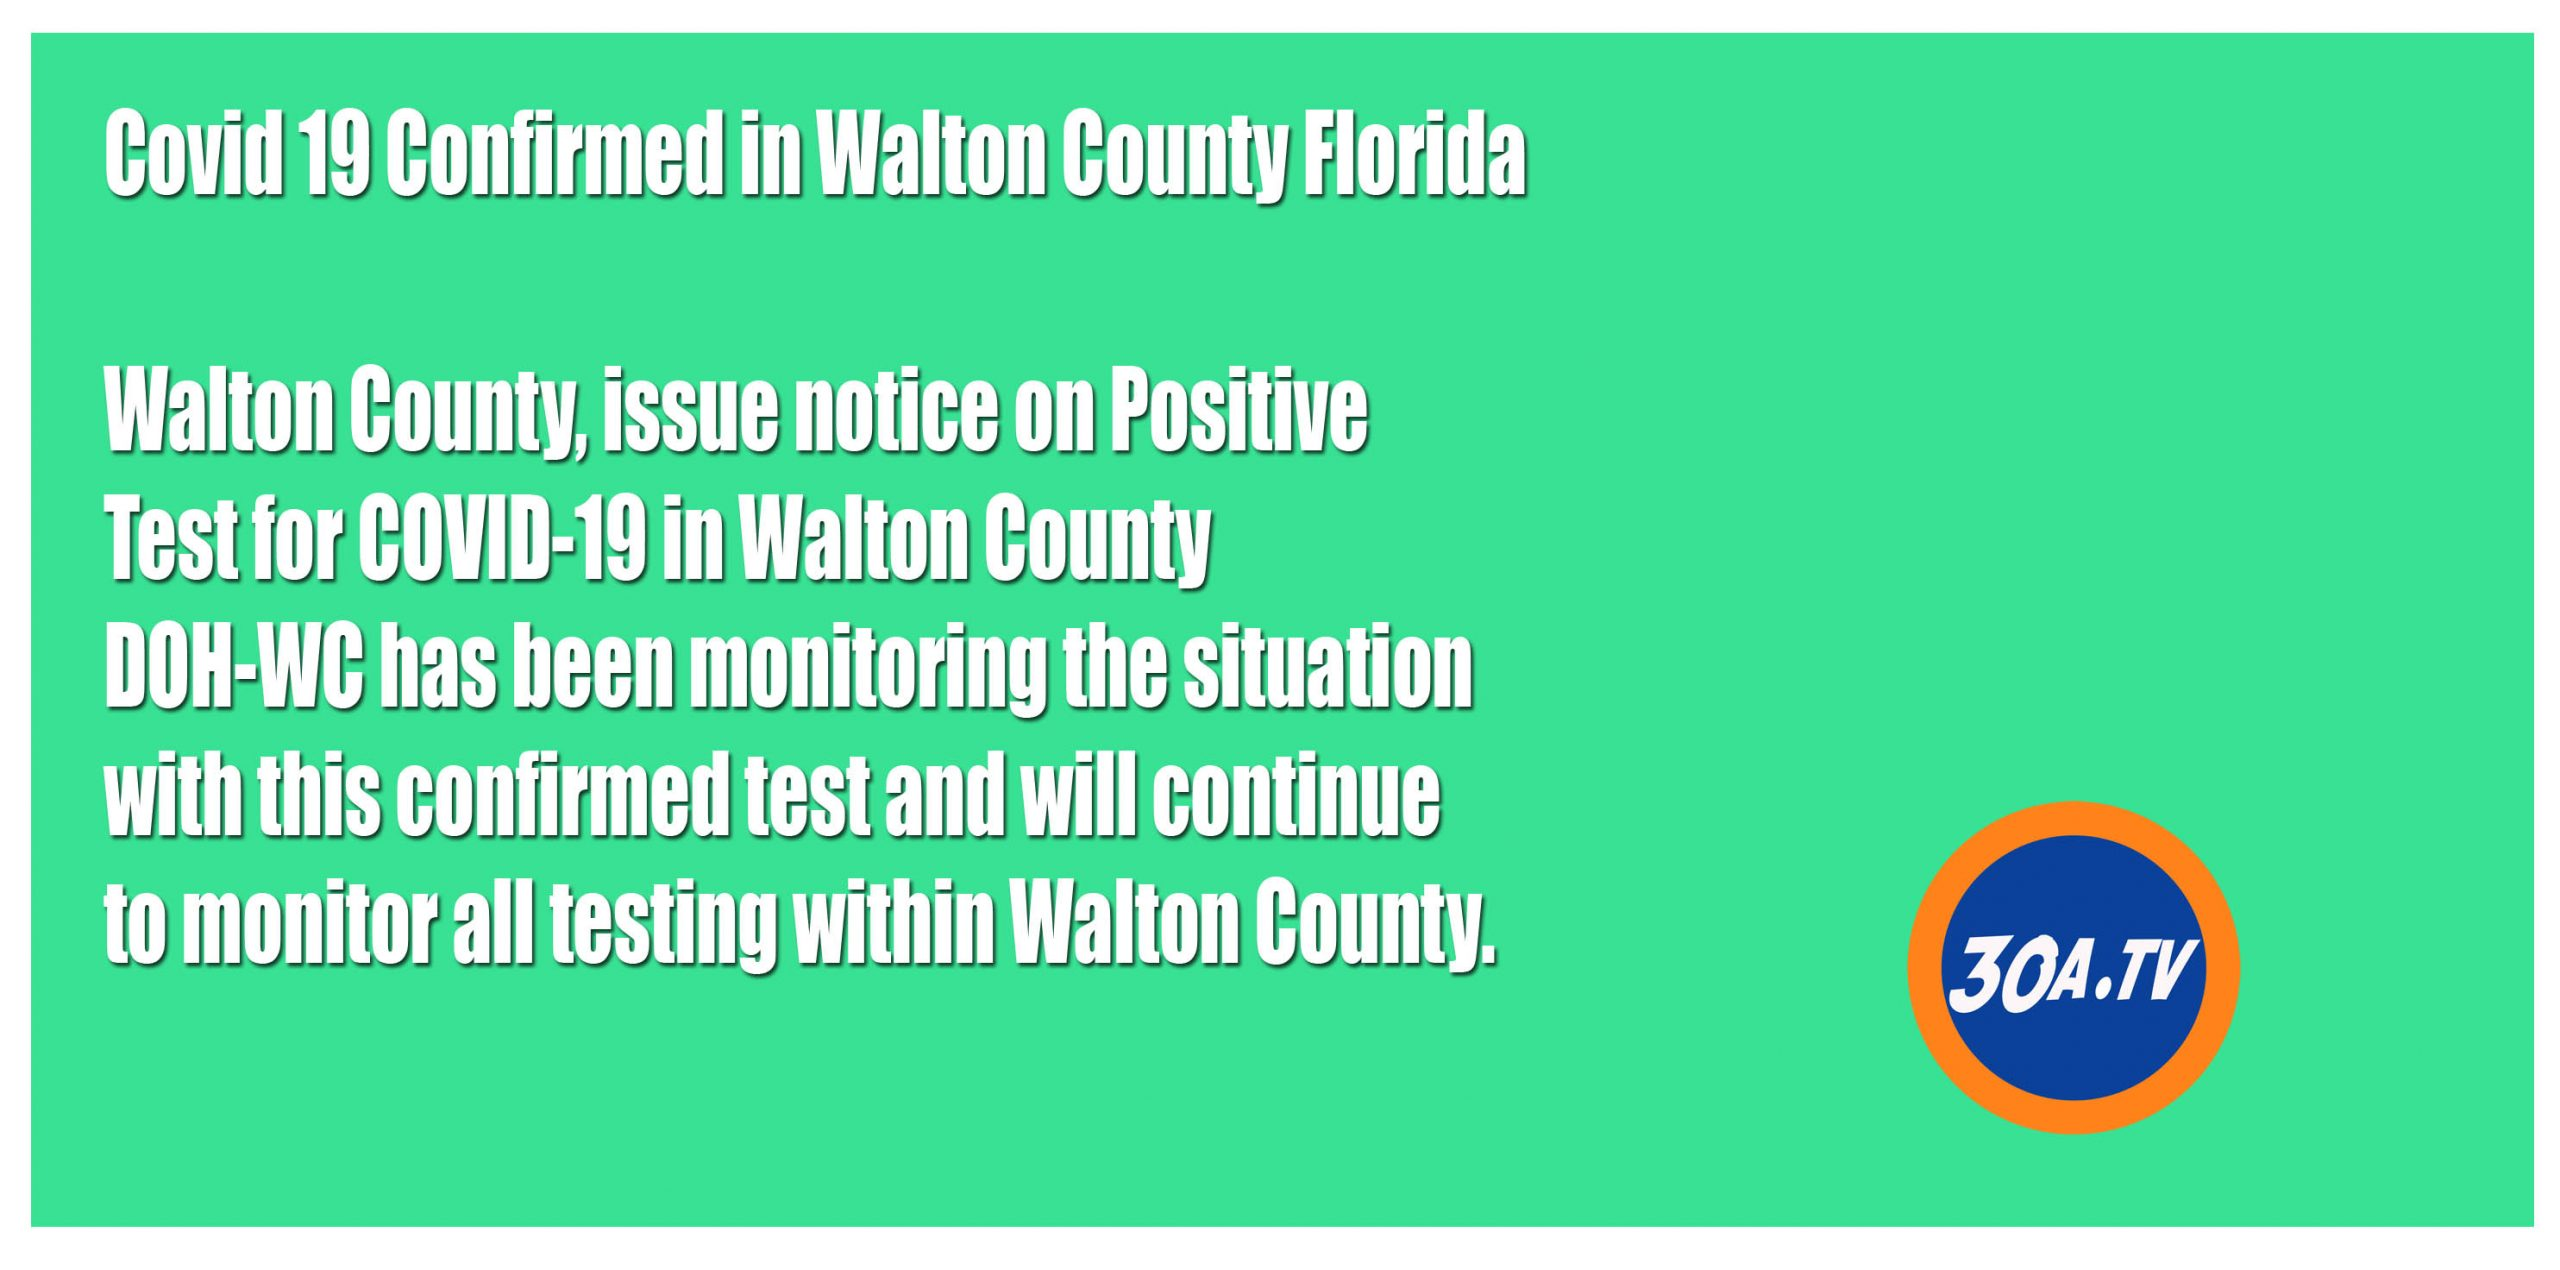 Positive Test for COVID-19 in Walton County